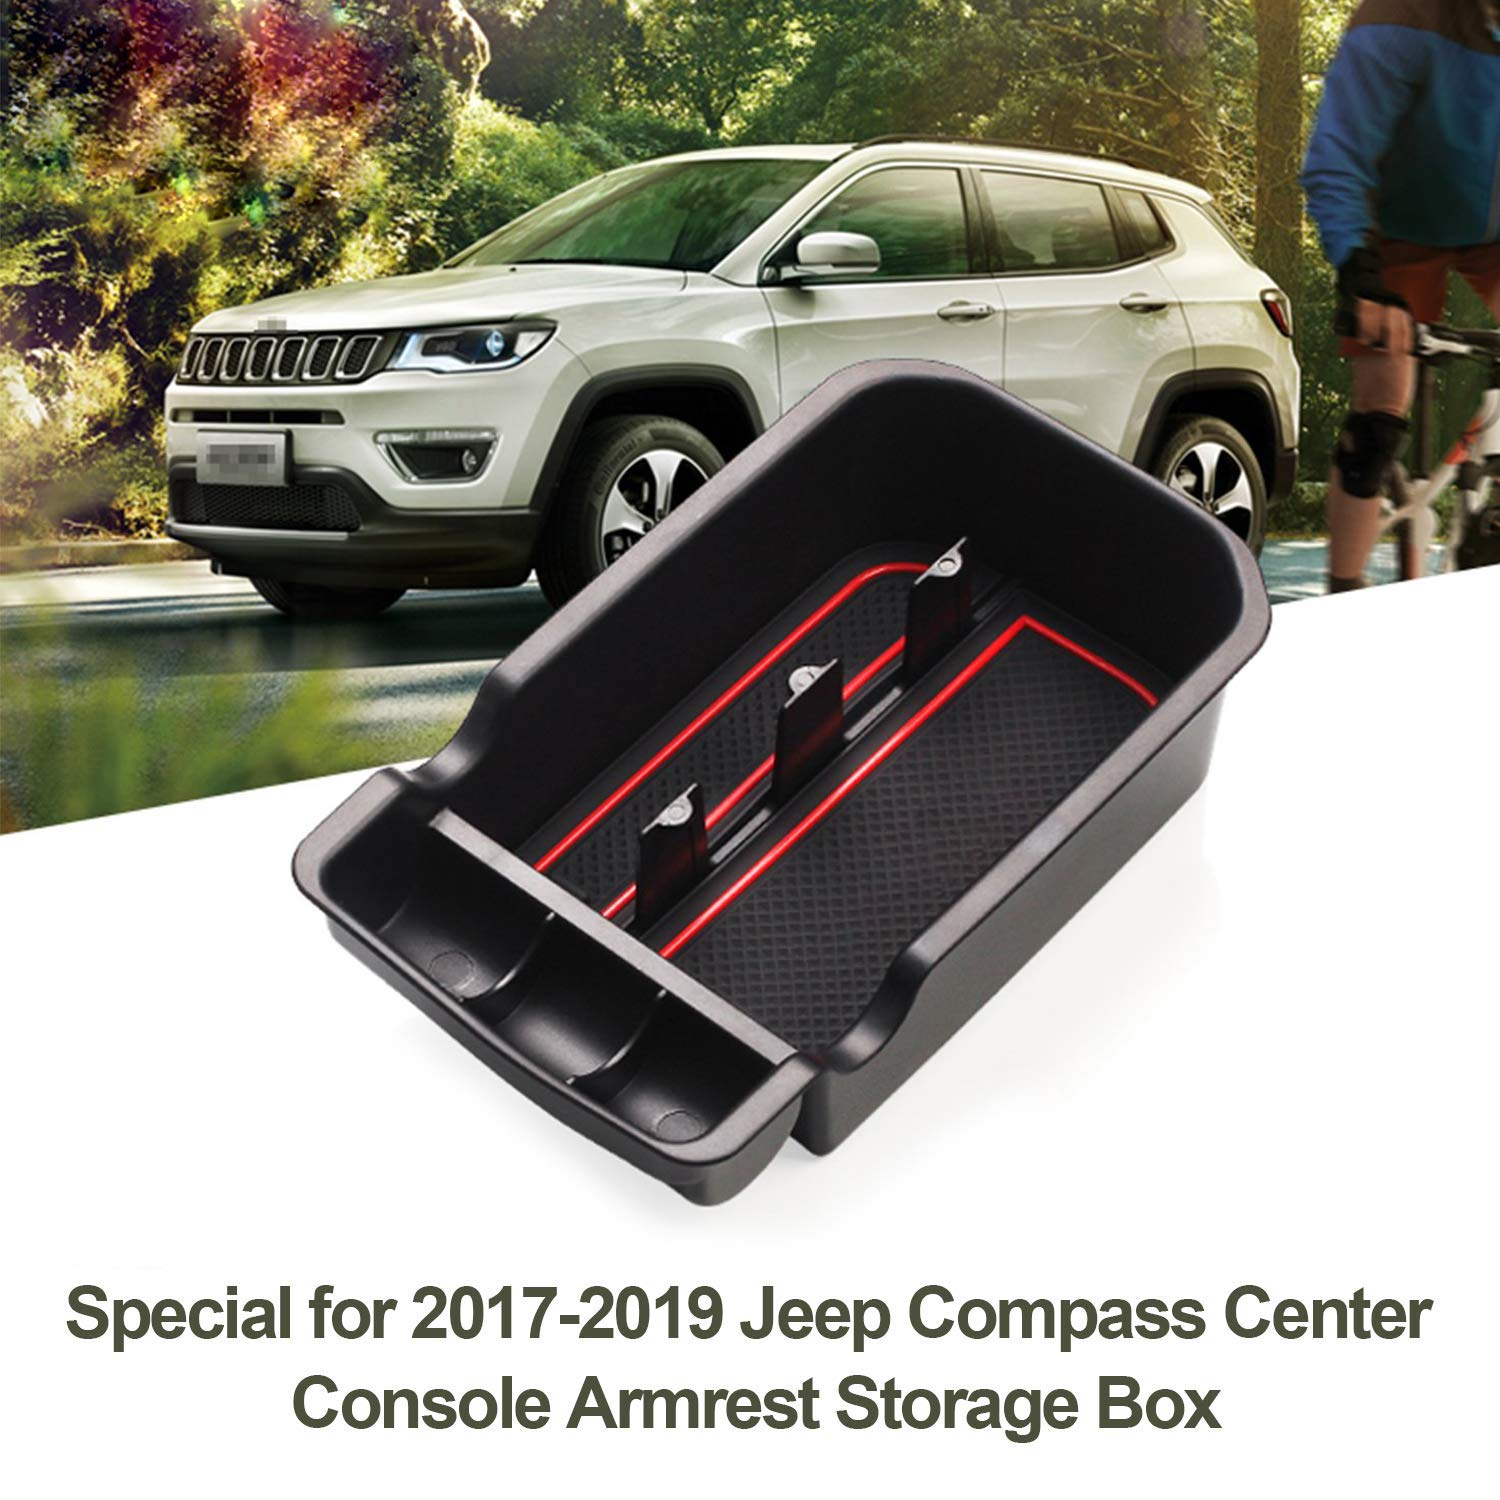 2017 2018 For Jeep Compass Interior Accessories Armrest Storage Glove Box Organizer Holder Container Black 1 Piece